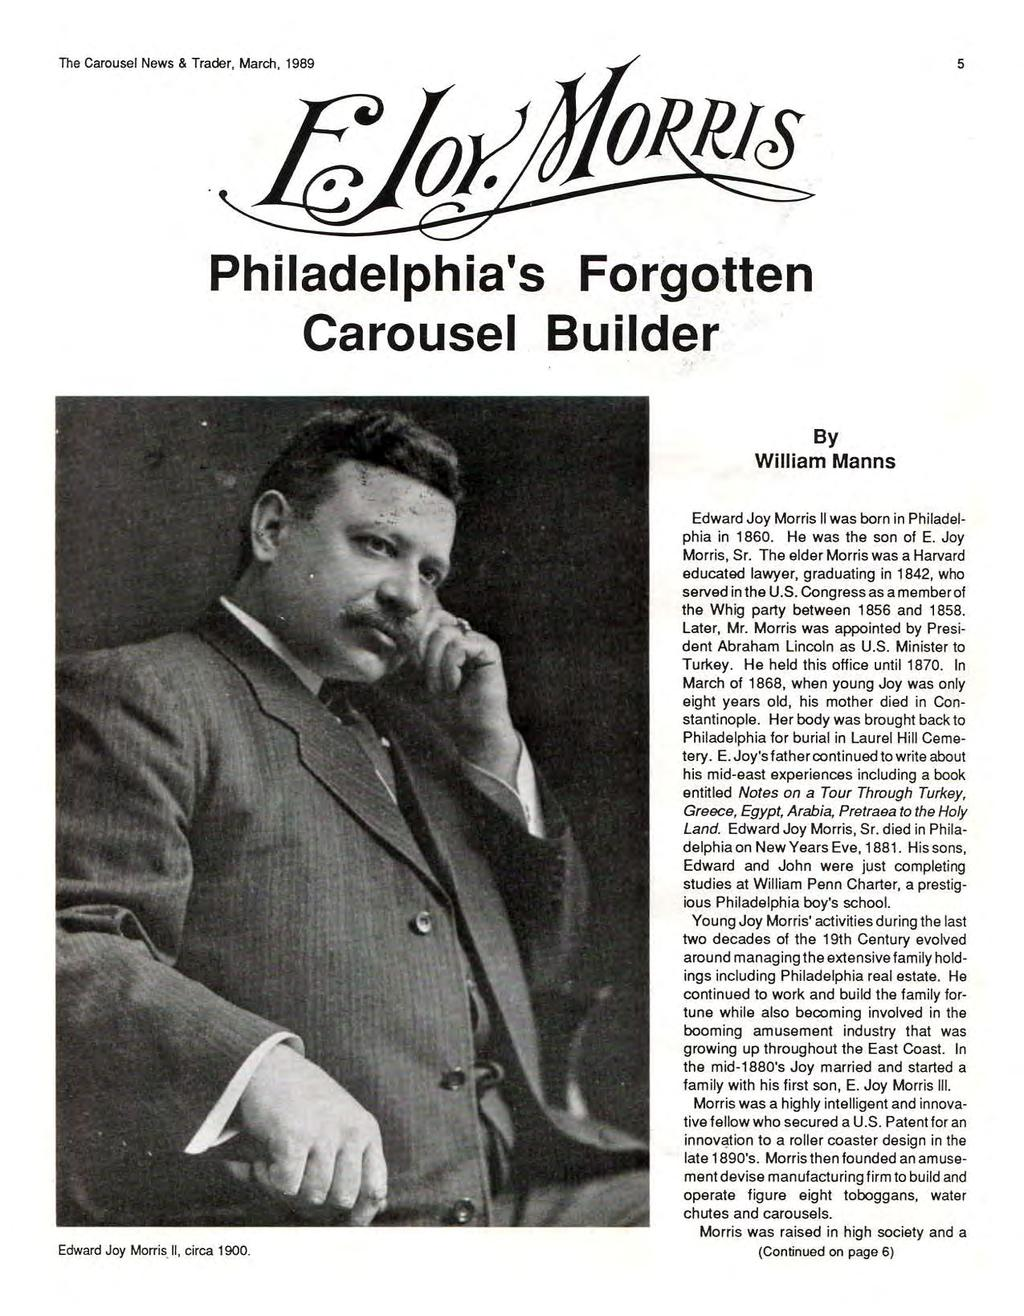 The Carousel News & Trader, March, 1989 5 Philadelphia's Fo.rgo-tten Carousel Builder By William Manns Edward Joy MorrisU, circa 1900. Edward Joy Morris II was born in Philadelphia in 1 860.